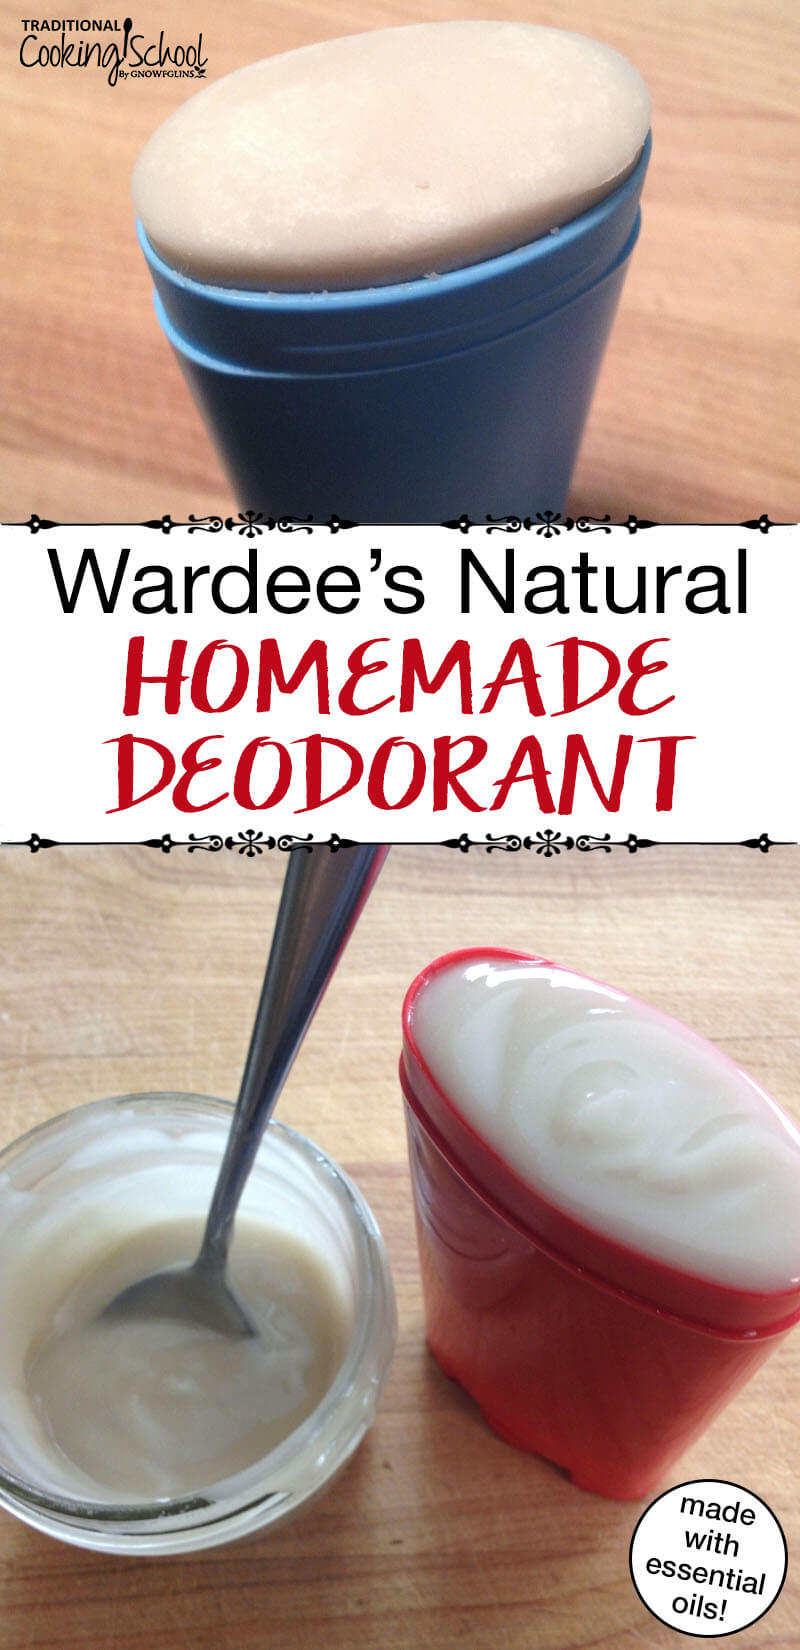 Introducing: Wardee's Natural, Homemade Deodorant